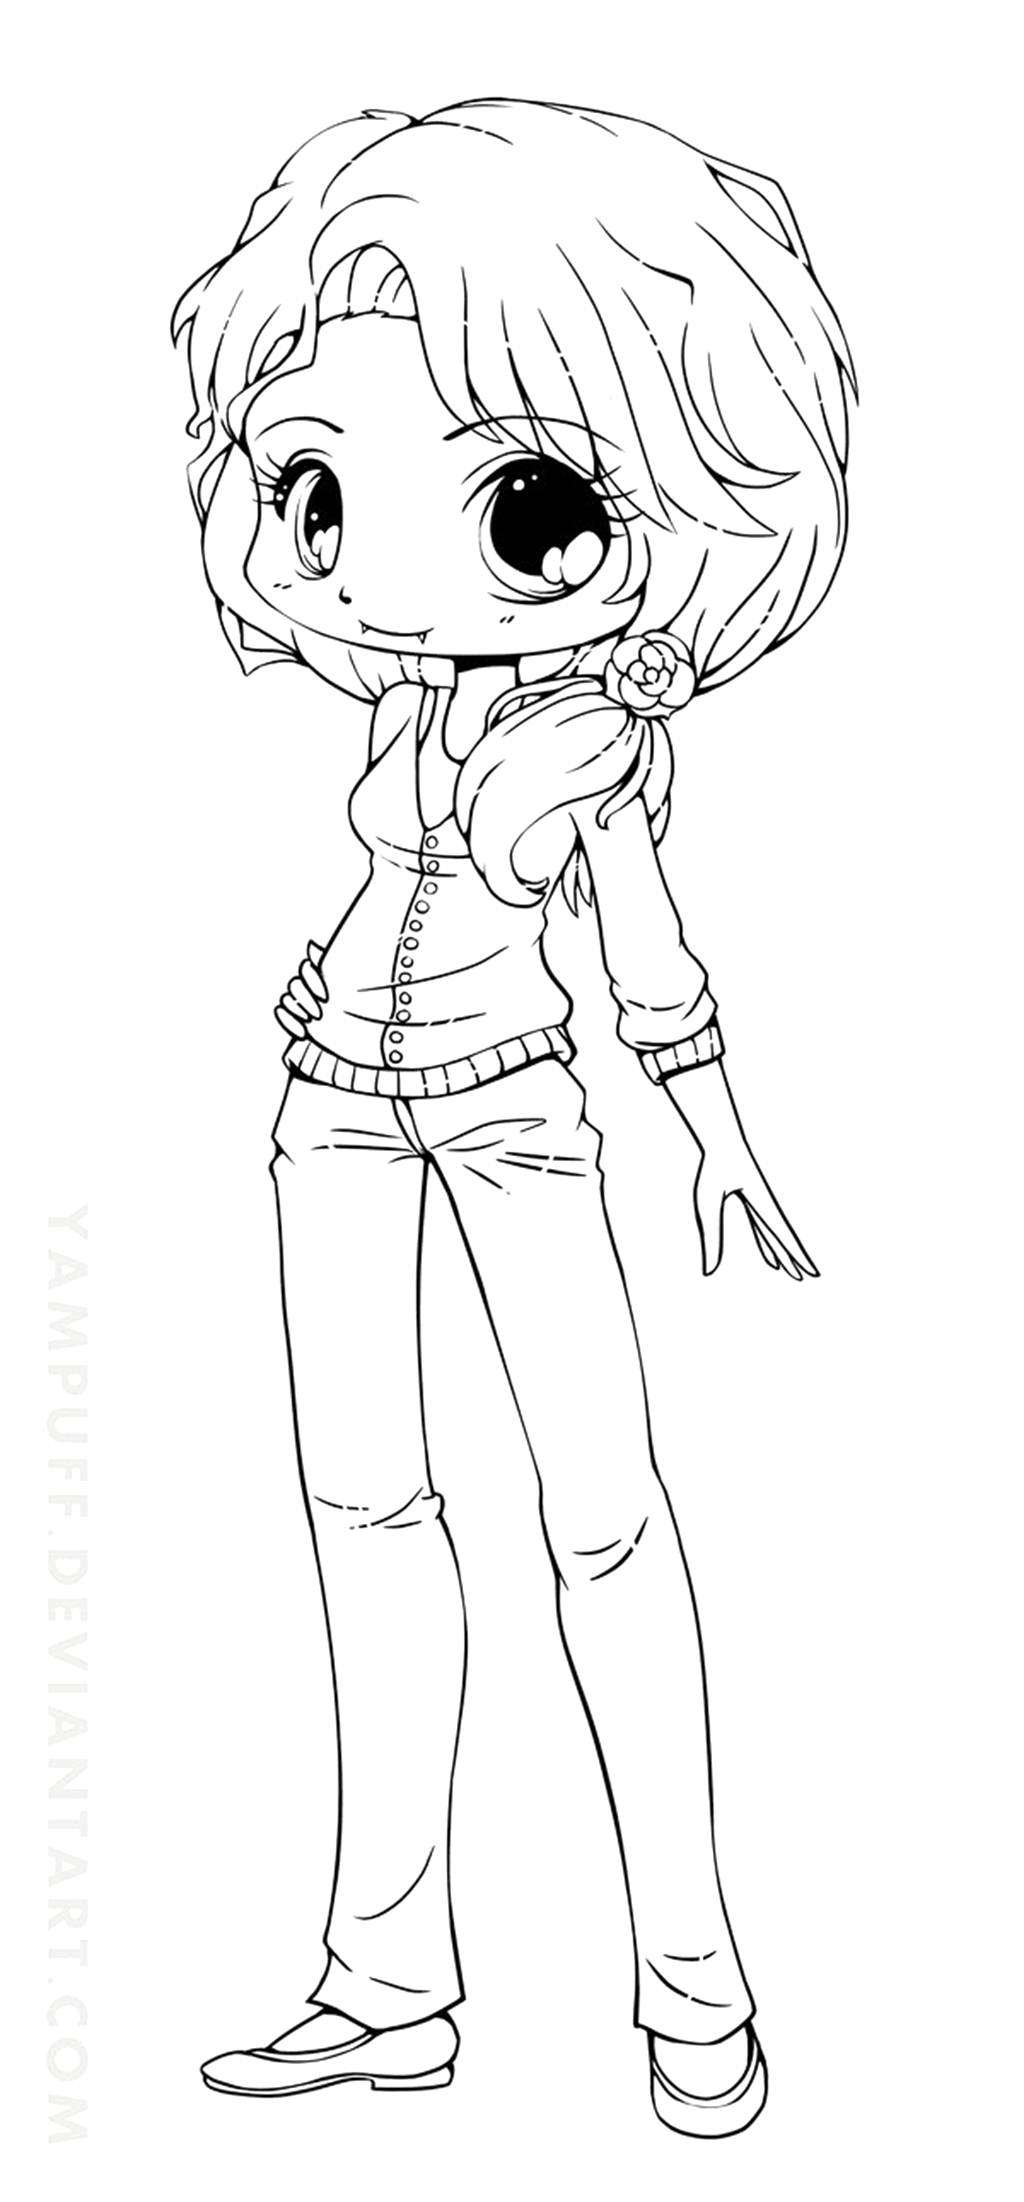 Cute Girl Coloring Pages Chibi Anime Girl Coloring Pages ...